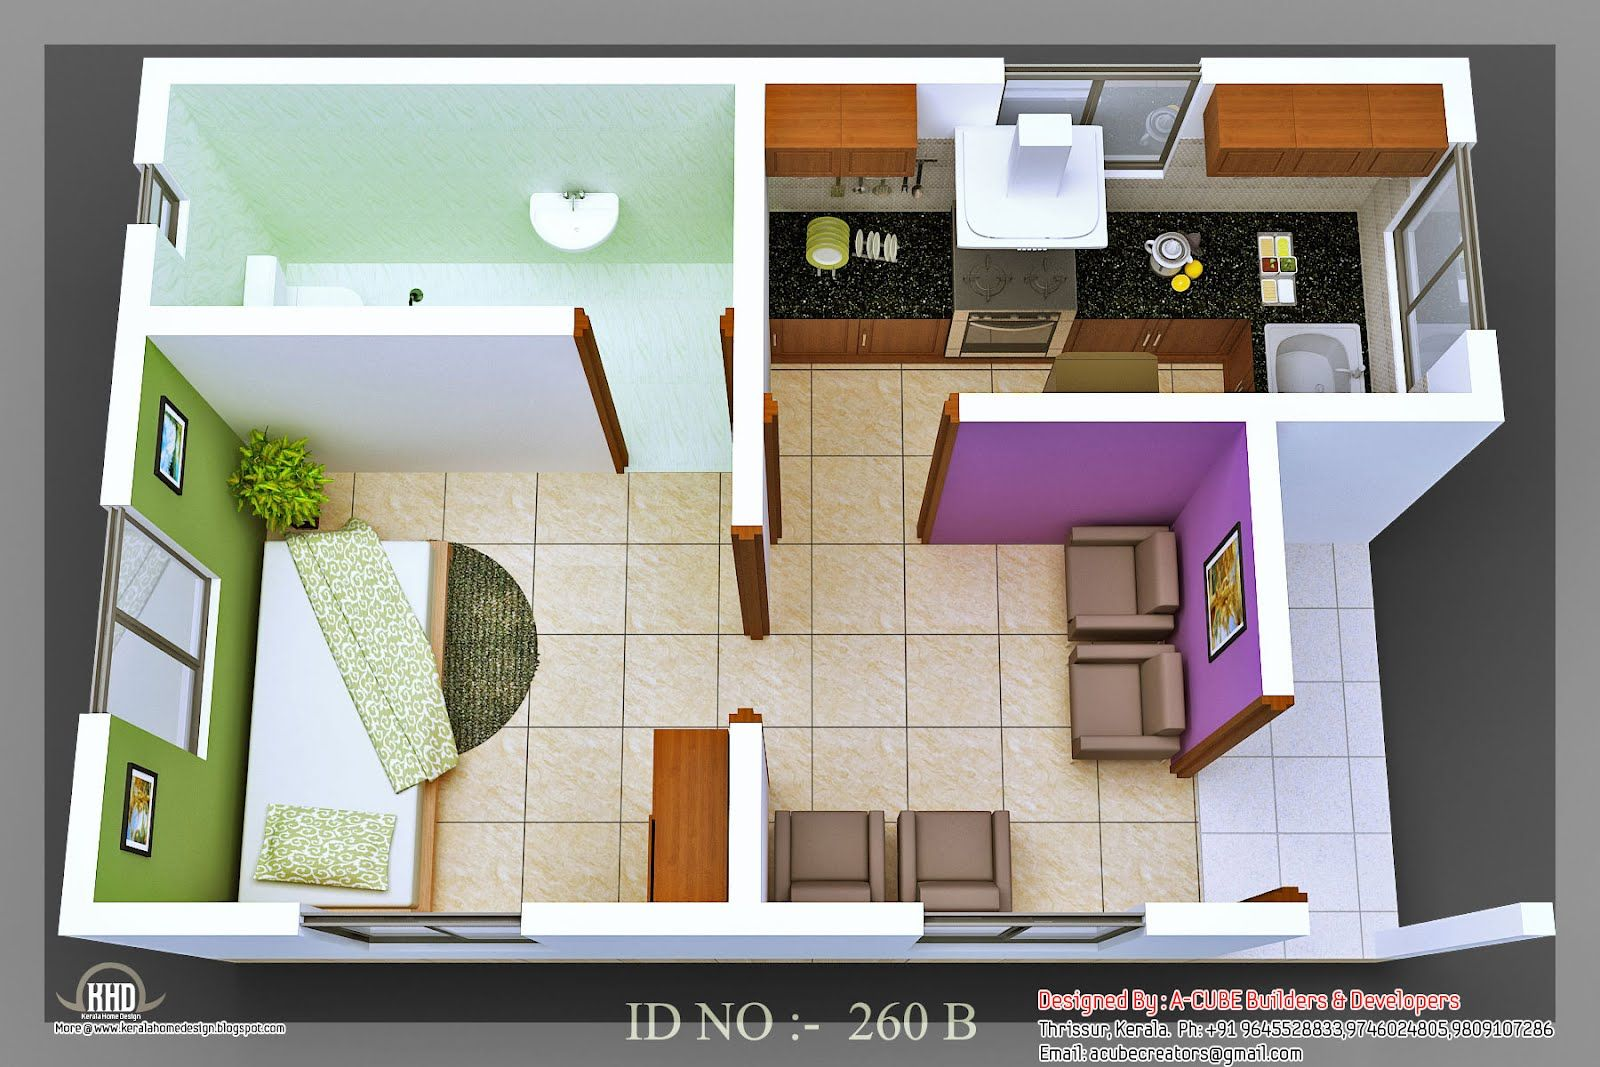 3d Isometric Views Of Small House Plans Small House Design Exterior Sims House Design Small House Design Plans